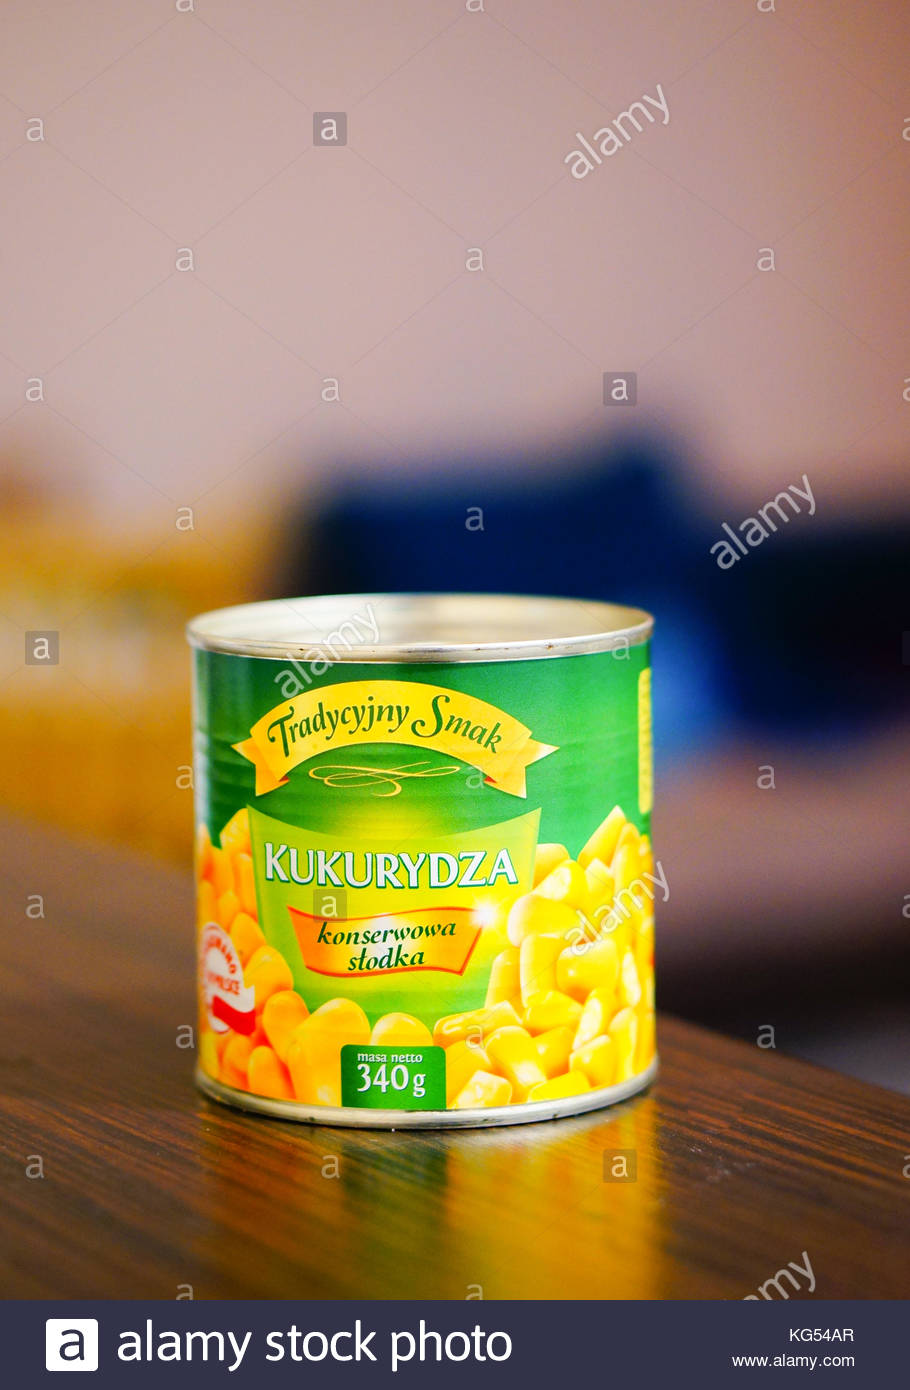 POZNAN, POLAND - FEBRUARY 26, 2016: Polish Tradycyjny Smak corn in a can on table - Stock Image